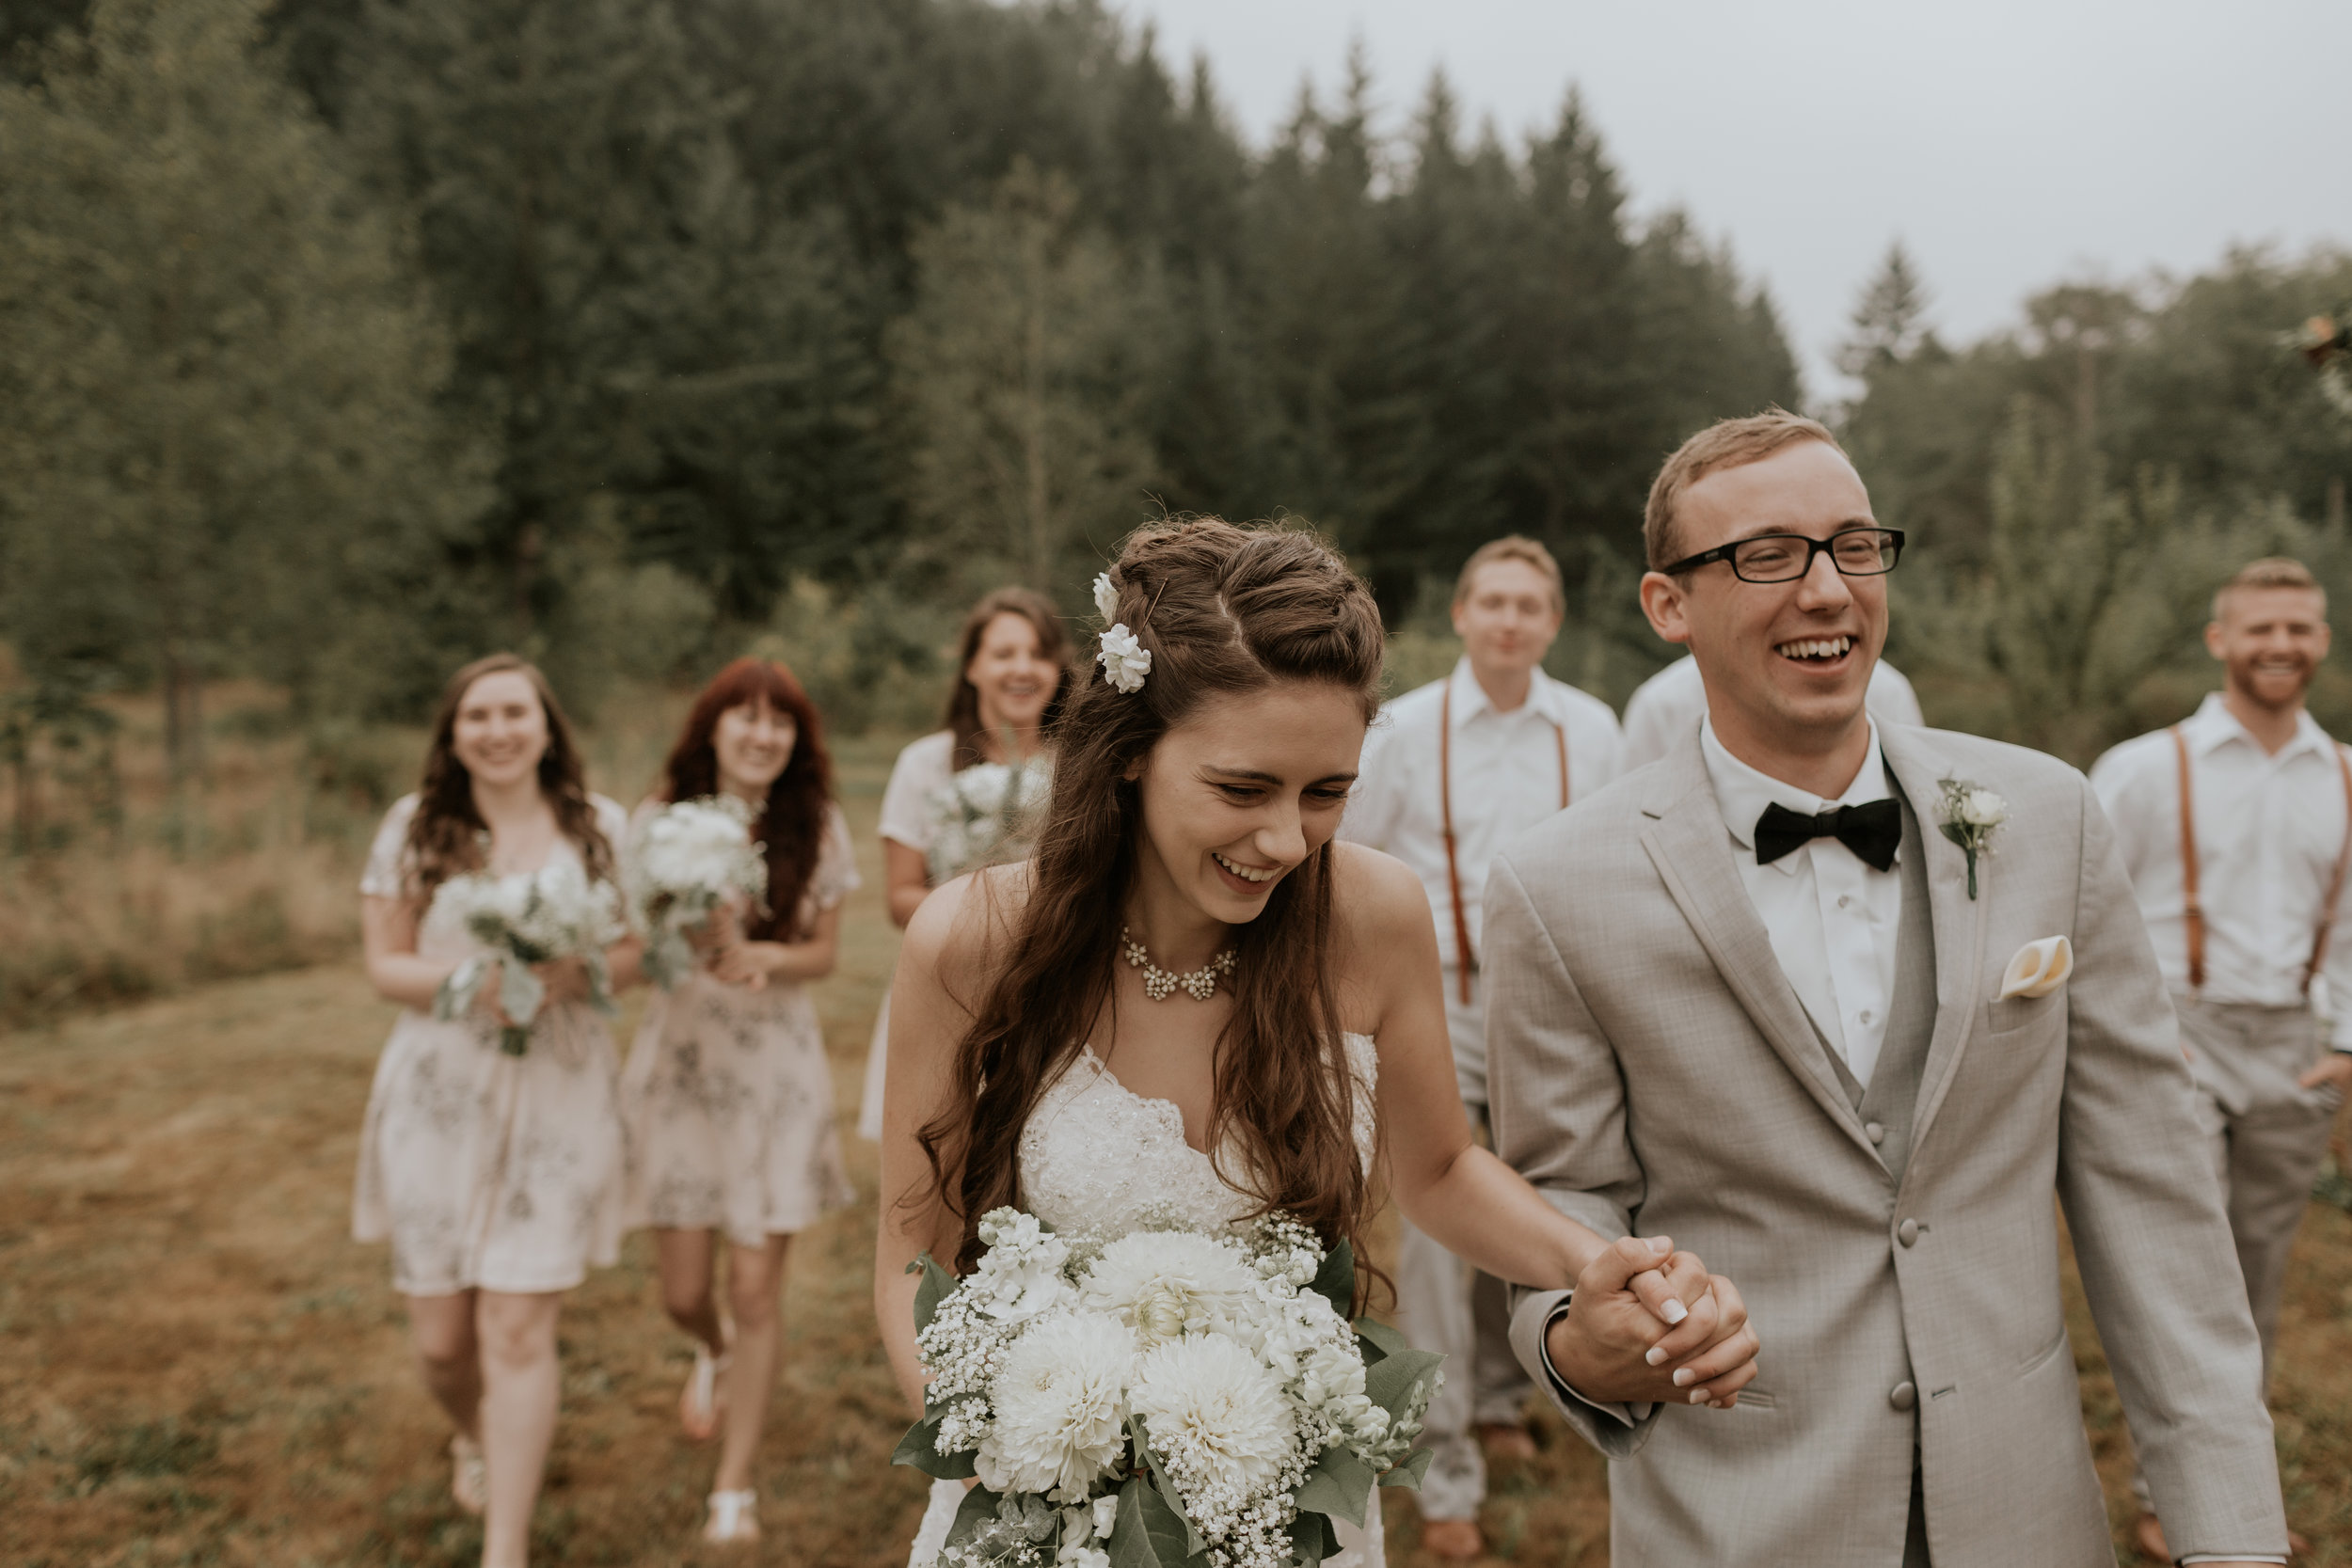 Port-Angeles-elopement-wedding-pnw-olympic-peninsula-photographer-portrait-kayladawnphoto-kayla-dawn-photography-olympic-national-park-120.jpg